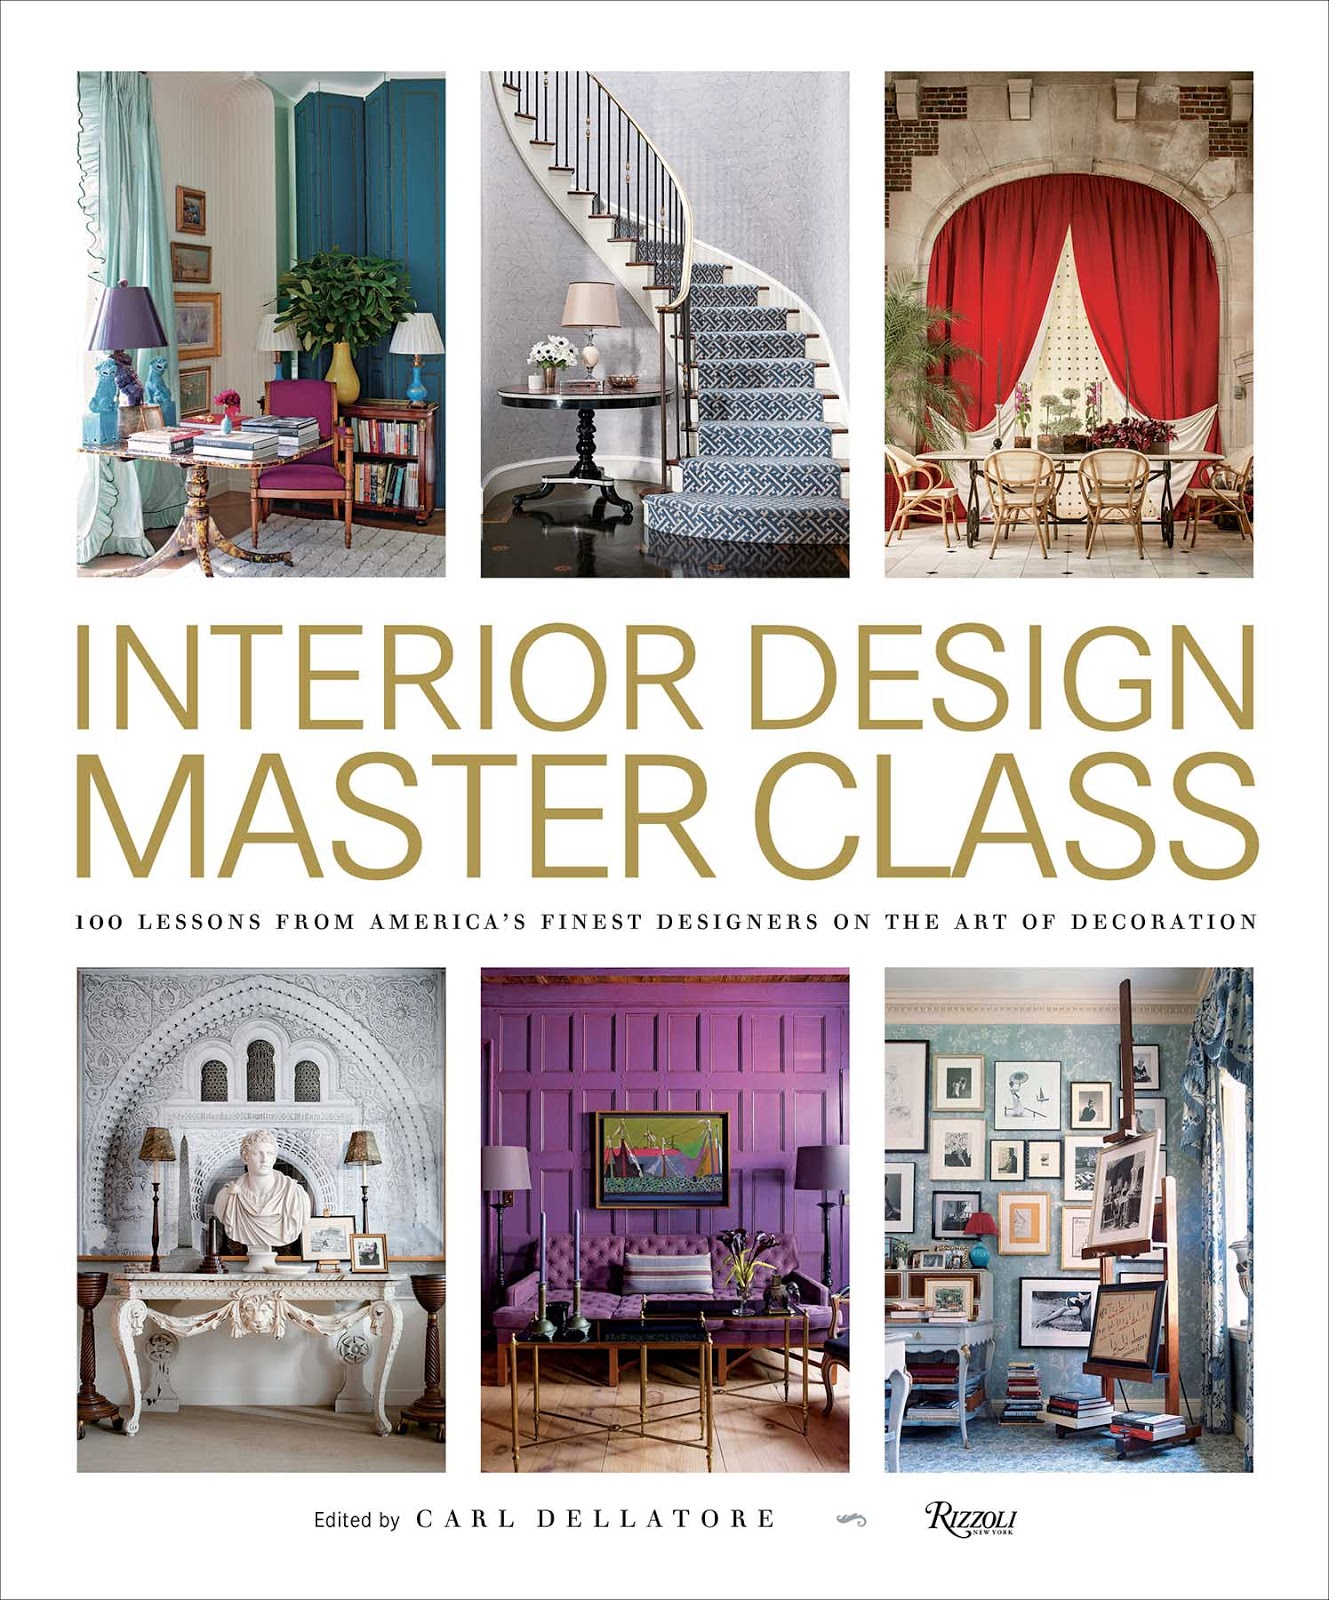 Interior Decoraters: The Style Saloniste: A Feast Of New Books: Two Fascinating